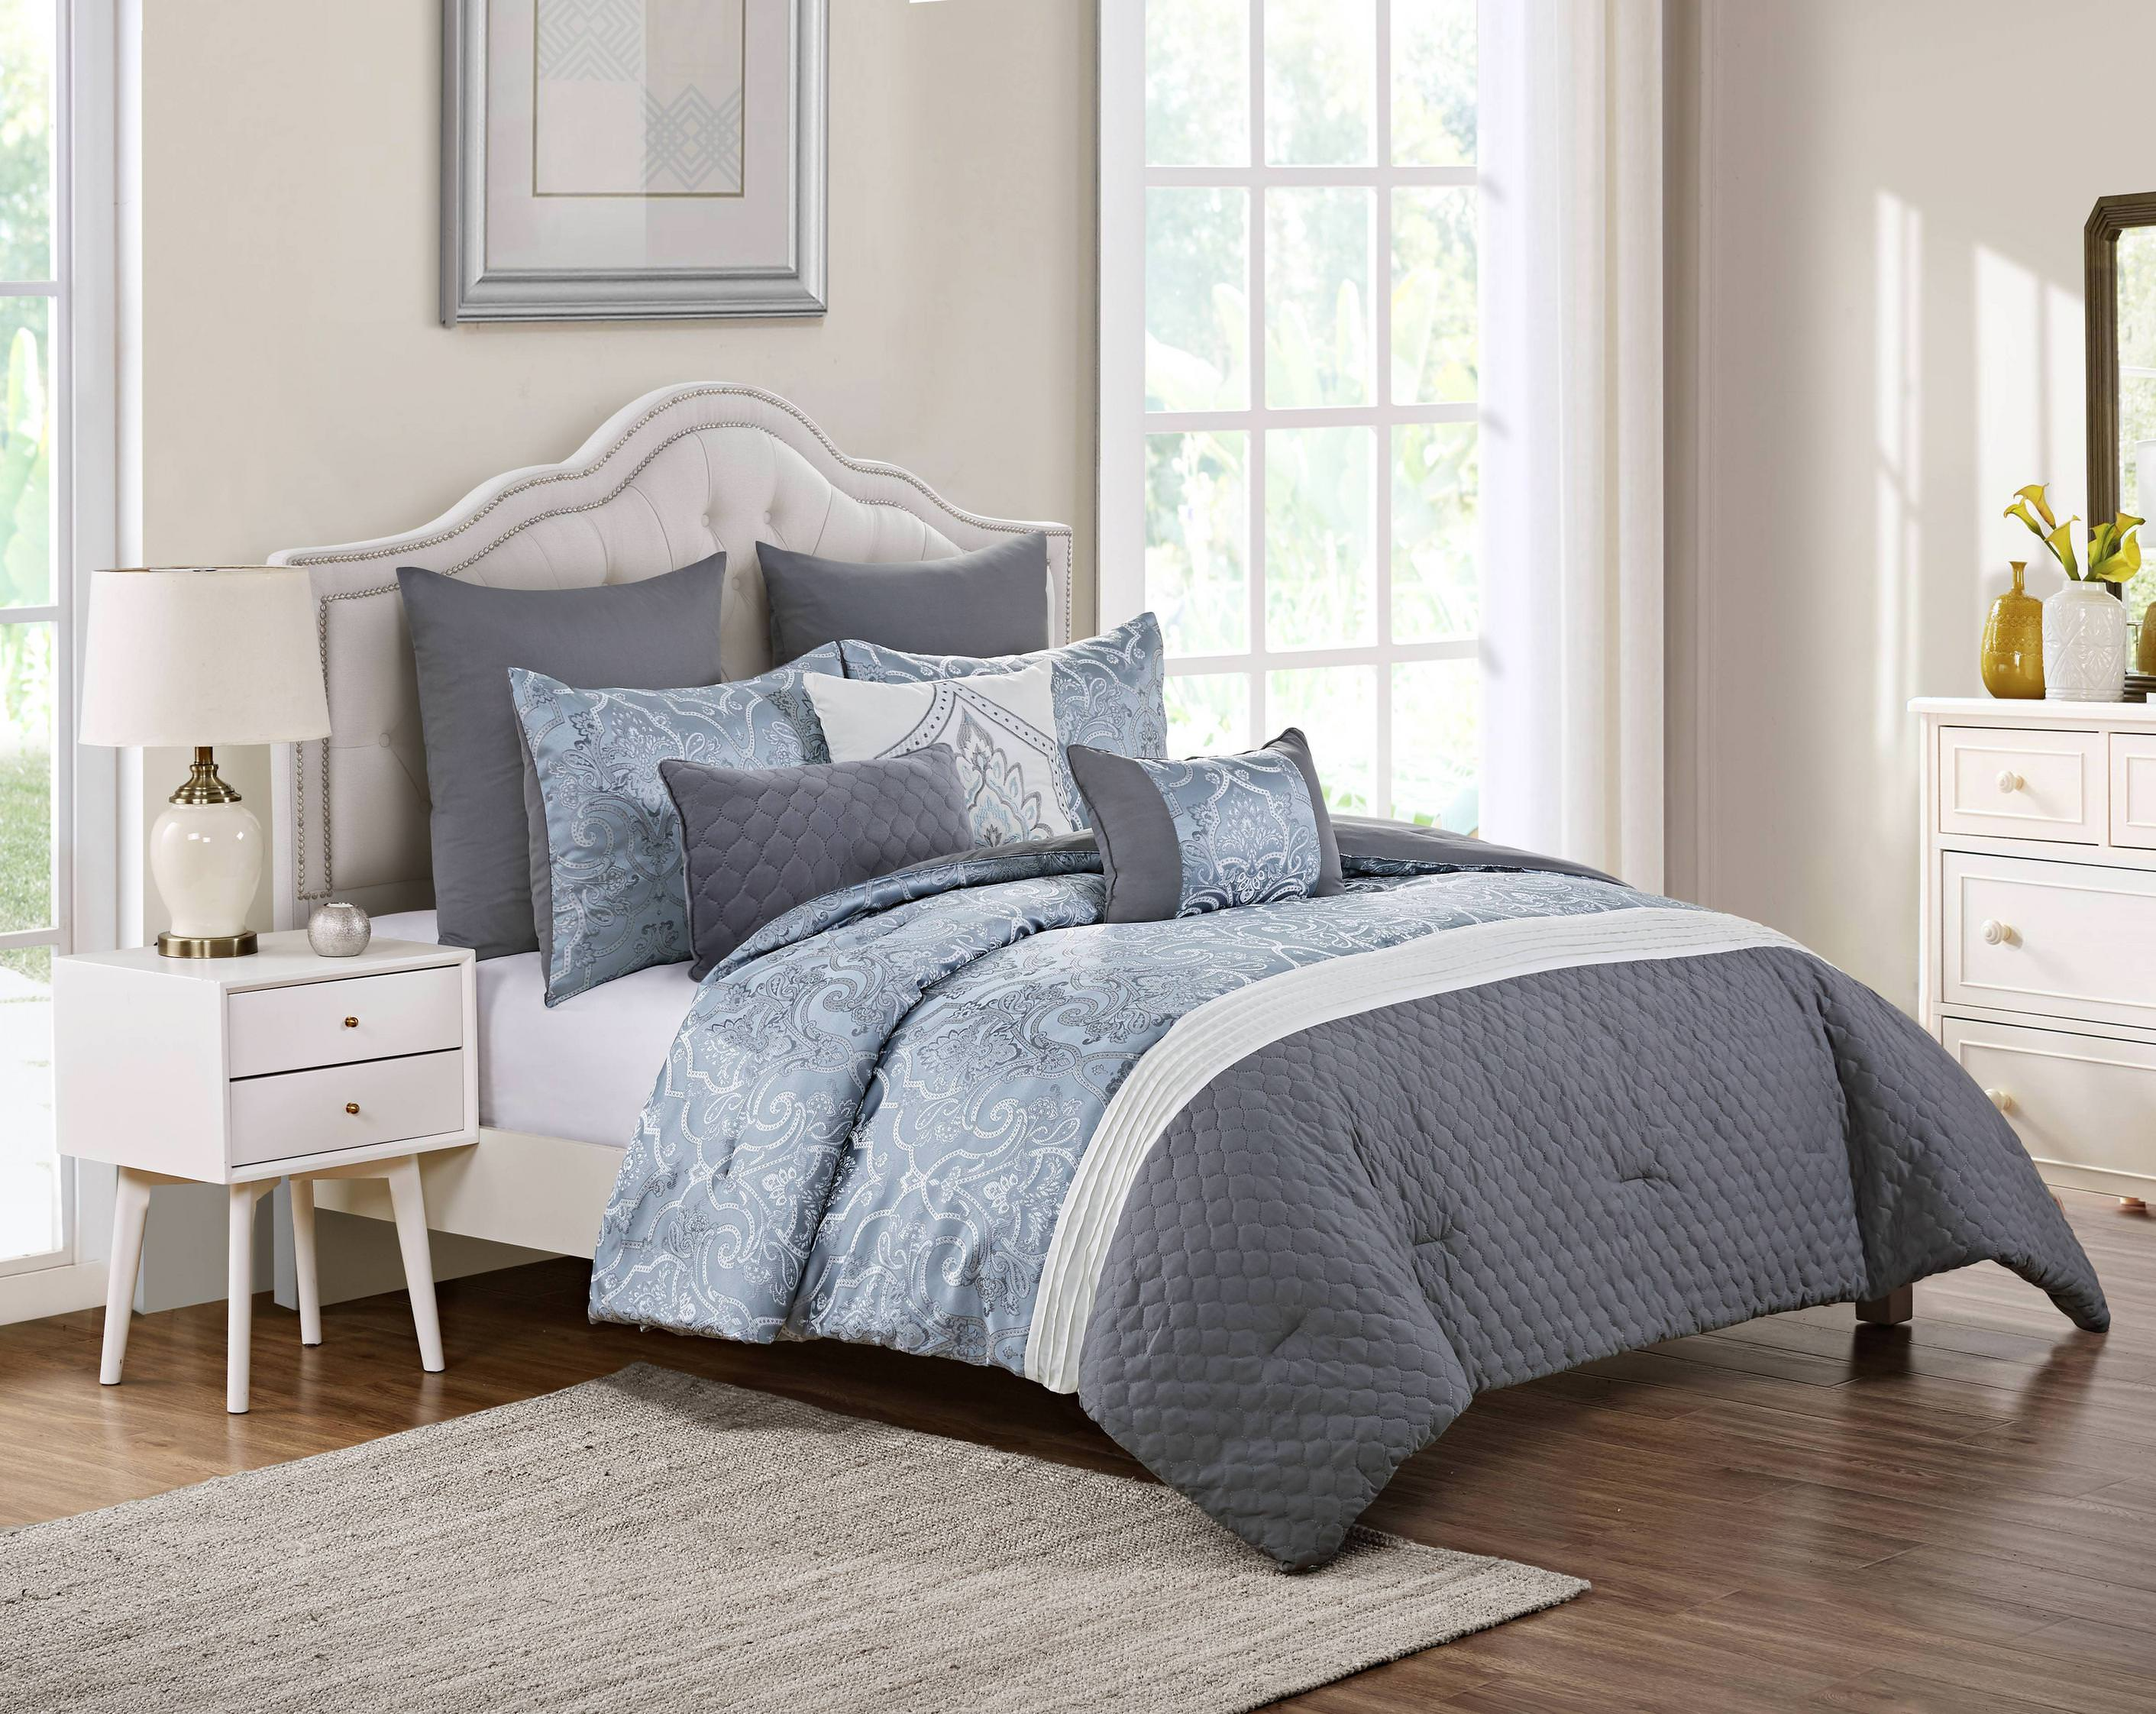 VCNY Home Waveland 8 Piece Woven Jacquard Comforter Set, Shams Available,  Multiple Sizes